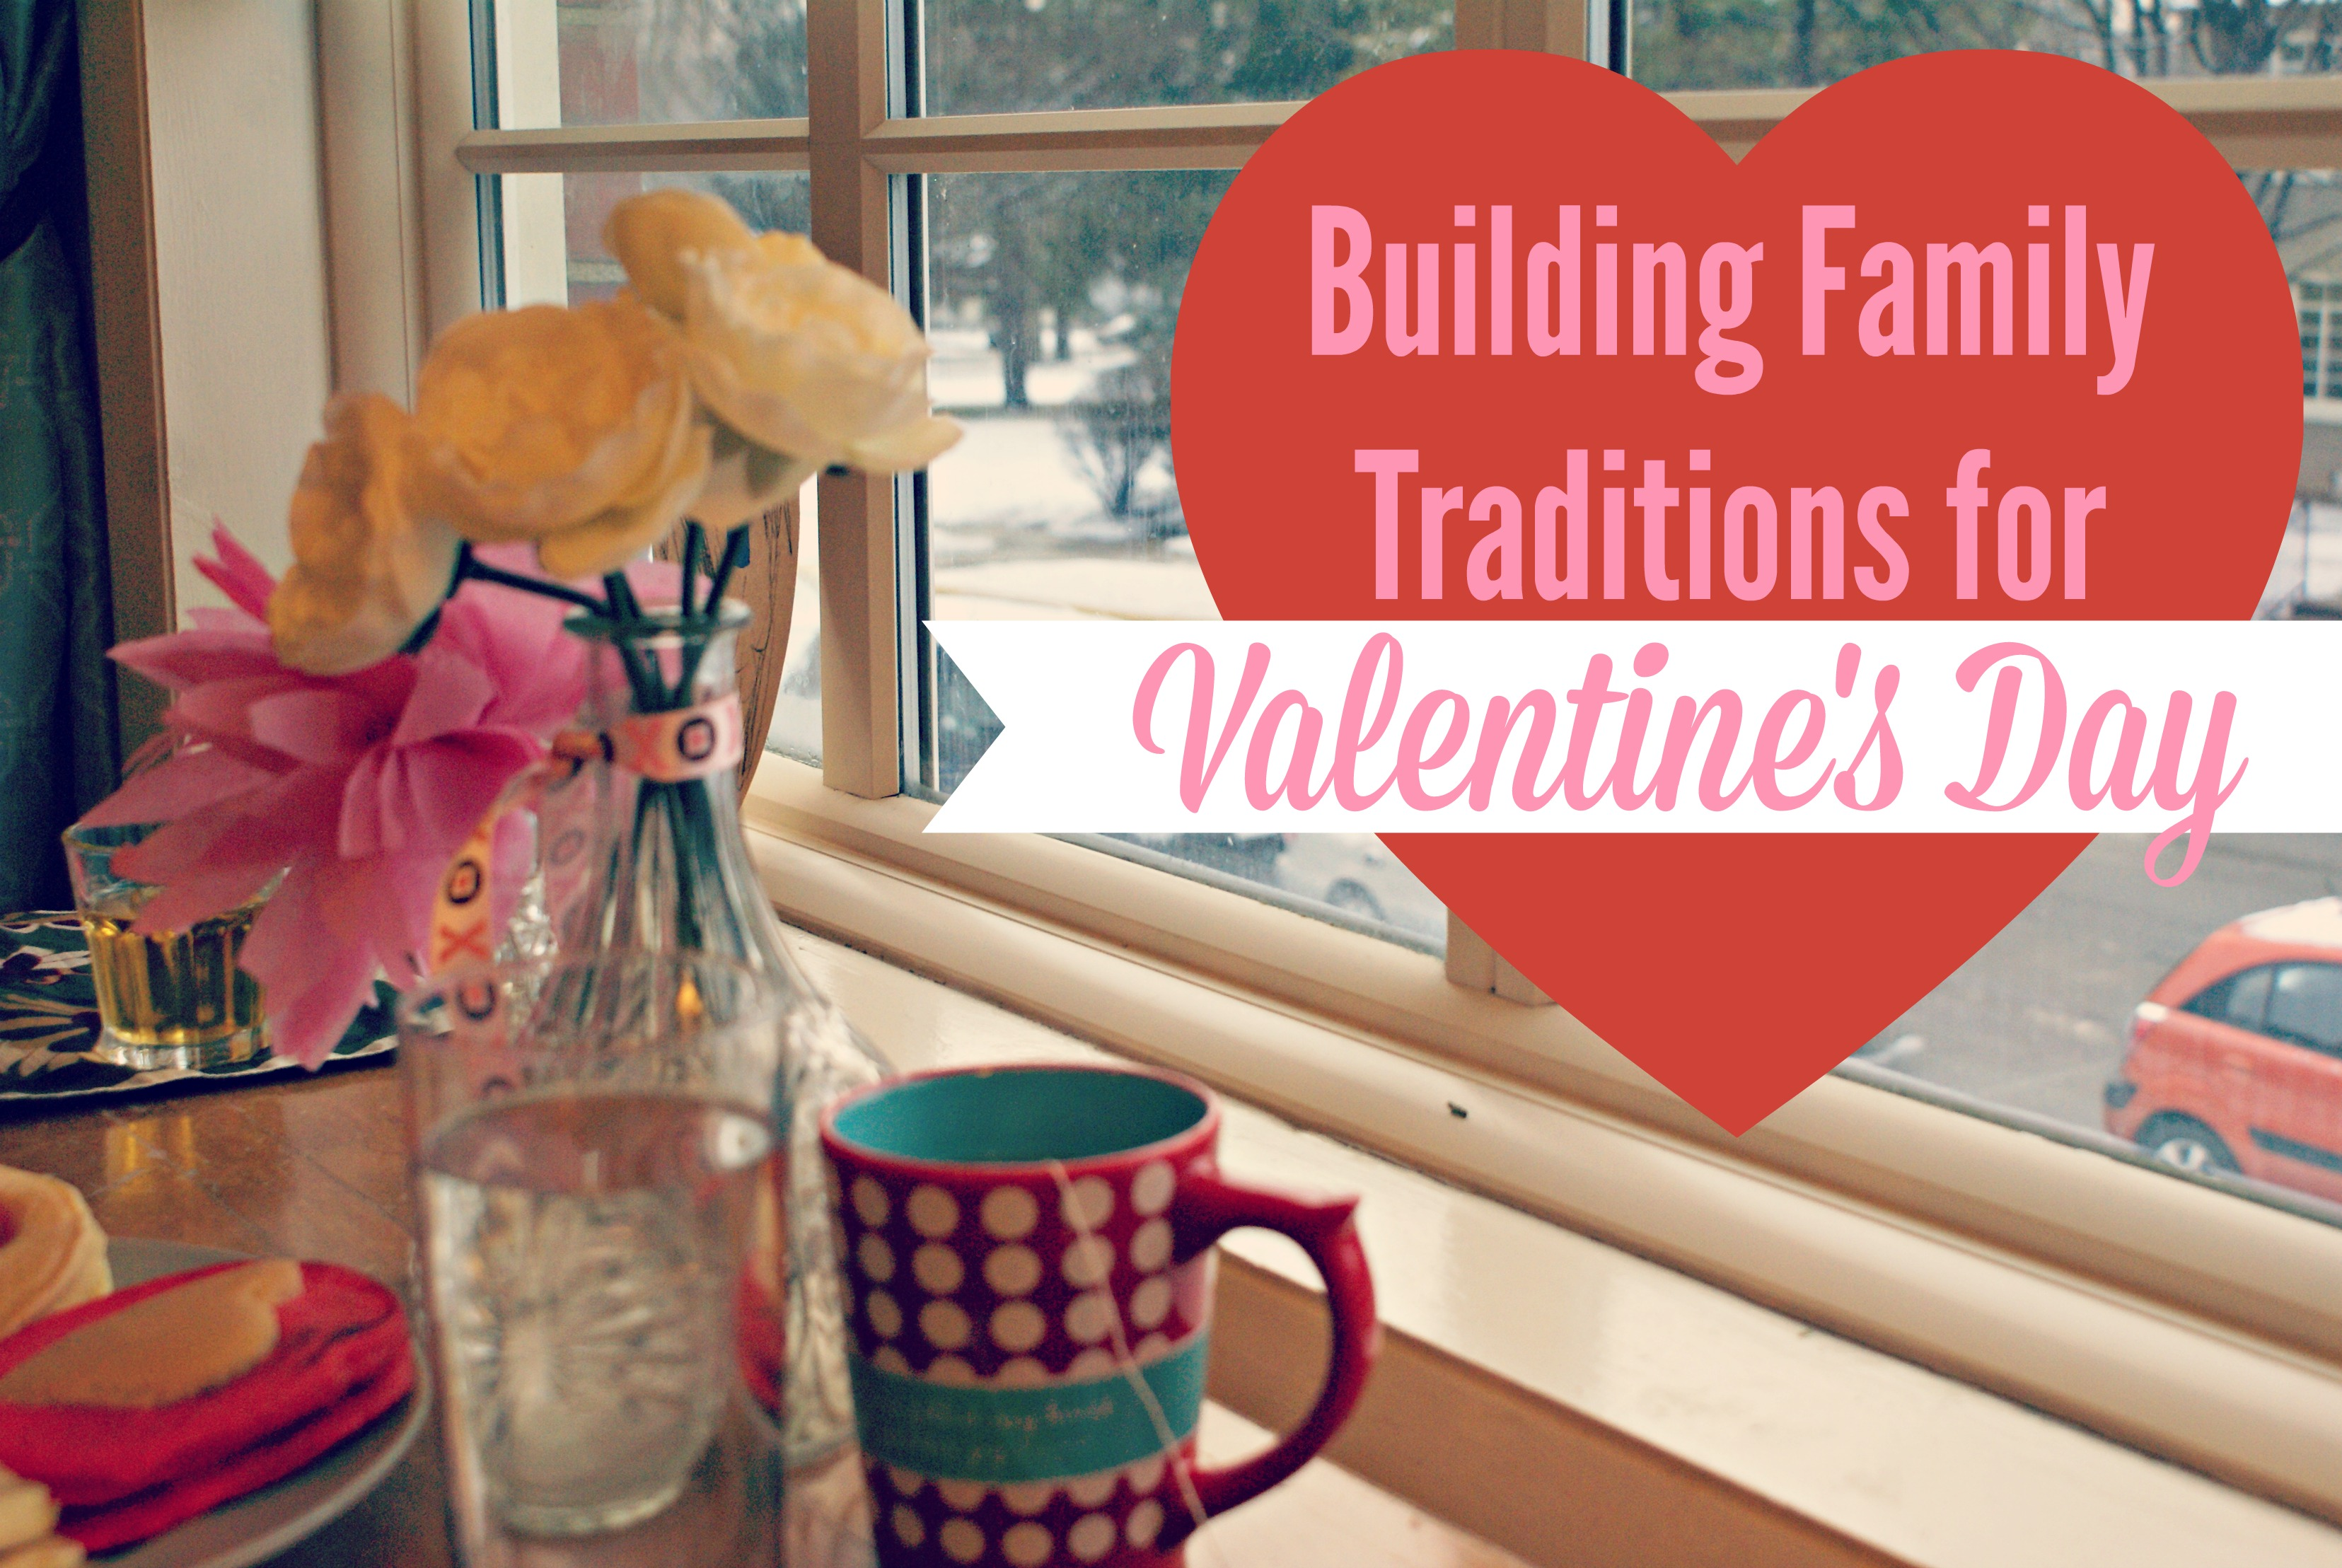 Building Family Traditions for Valentine's Day